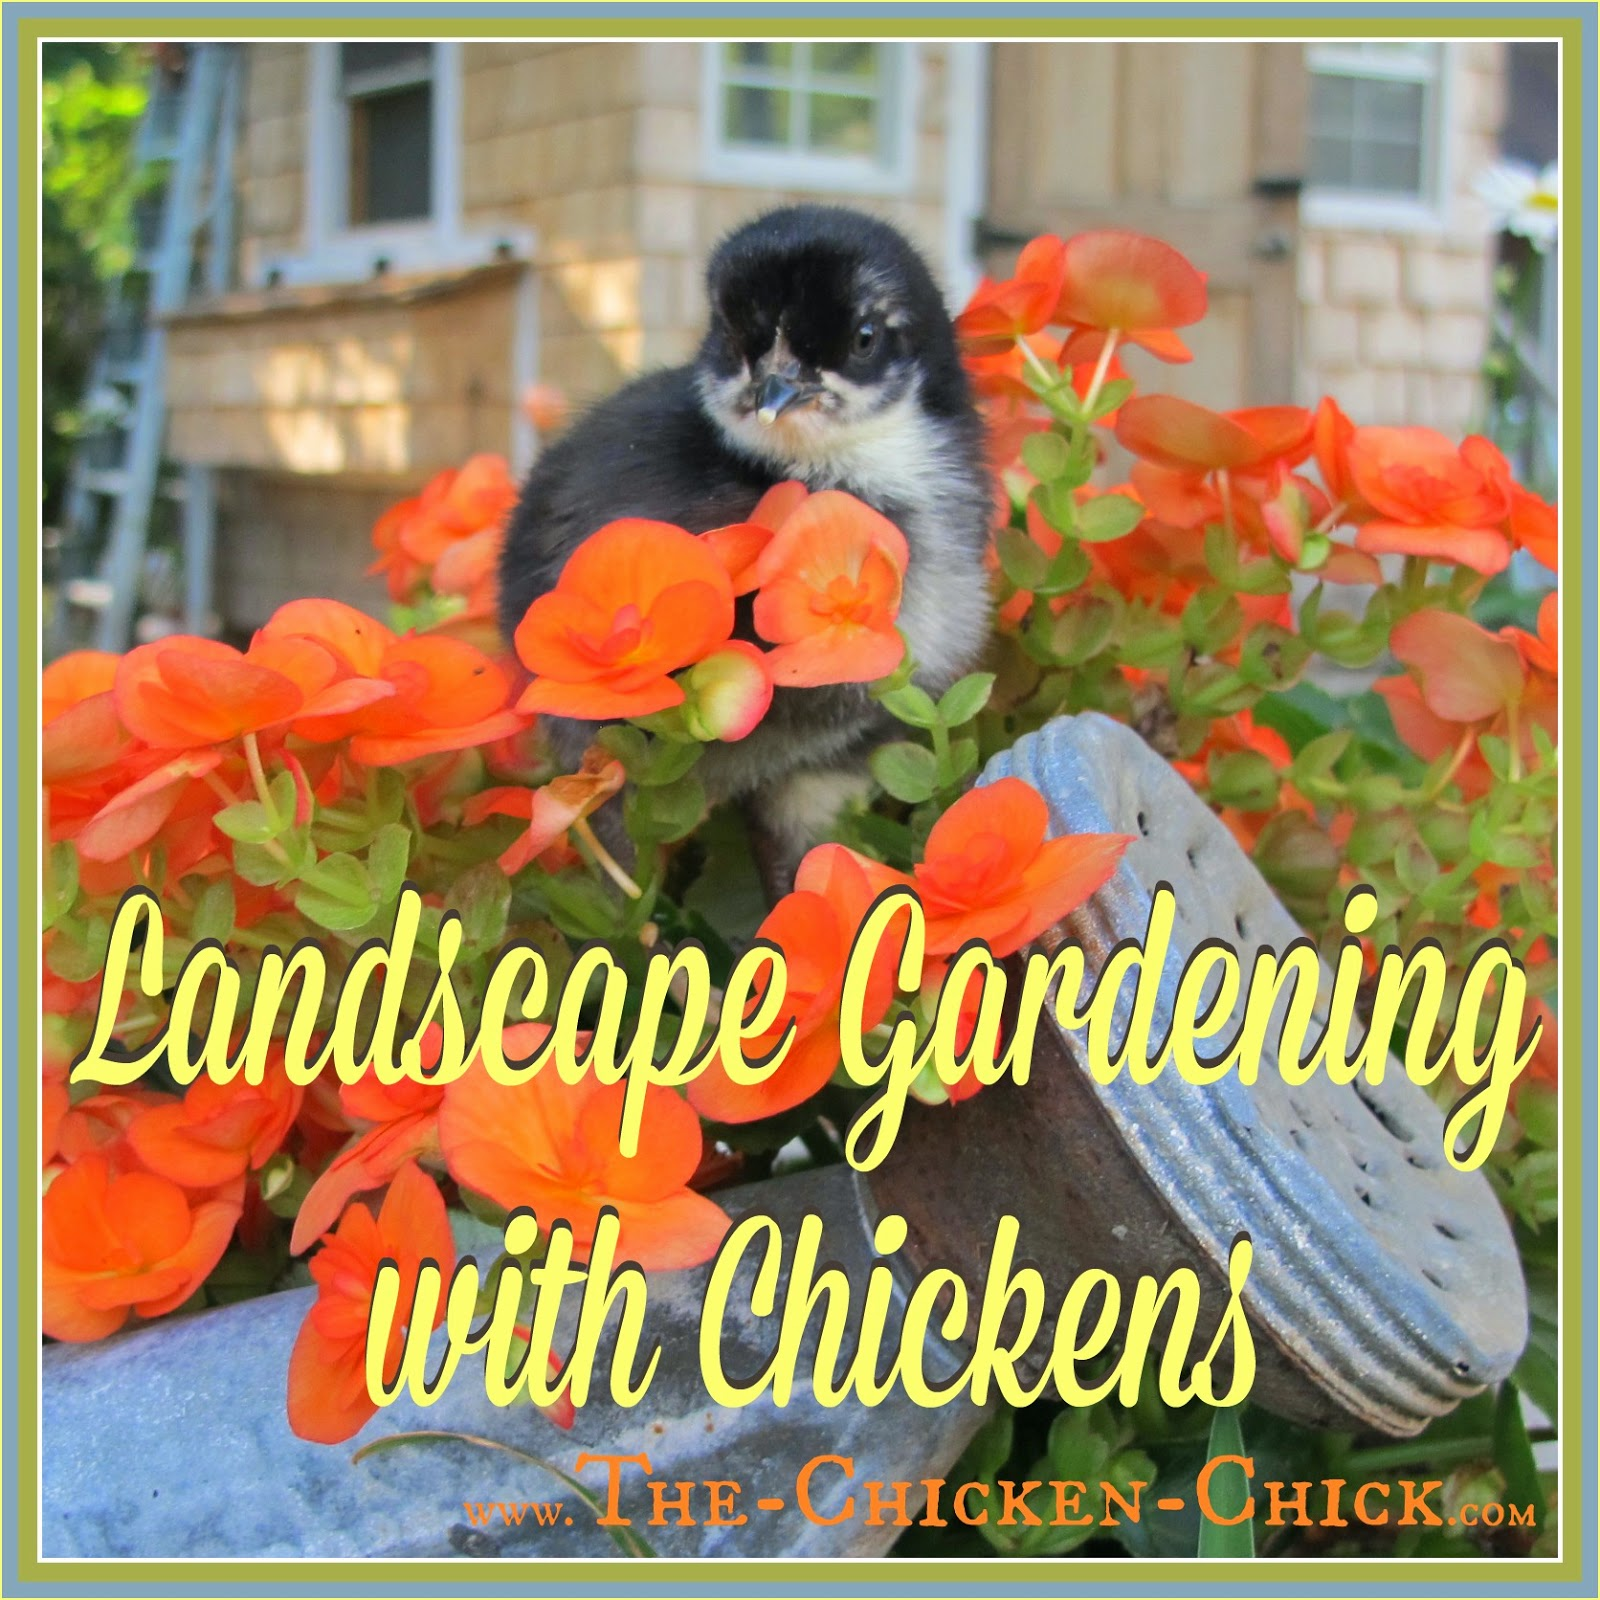 Landscape Gardening with Chickens by The Chicken Chick